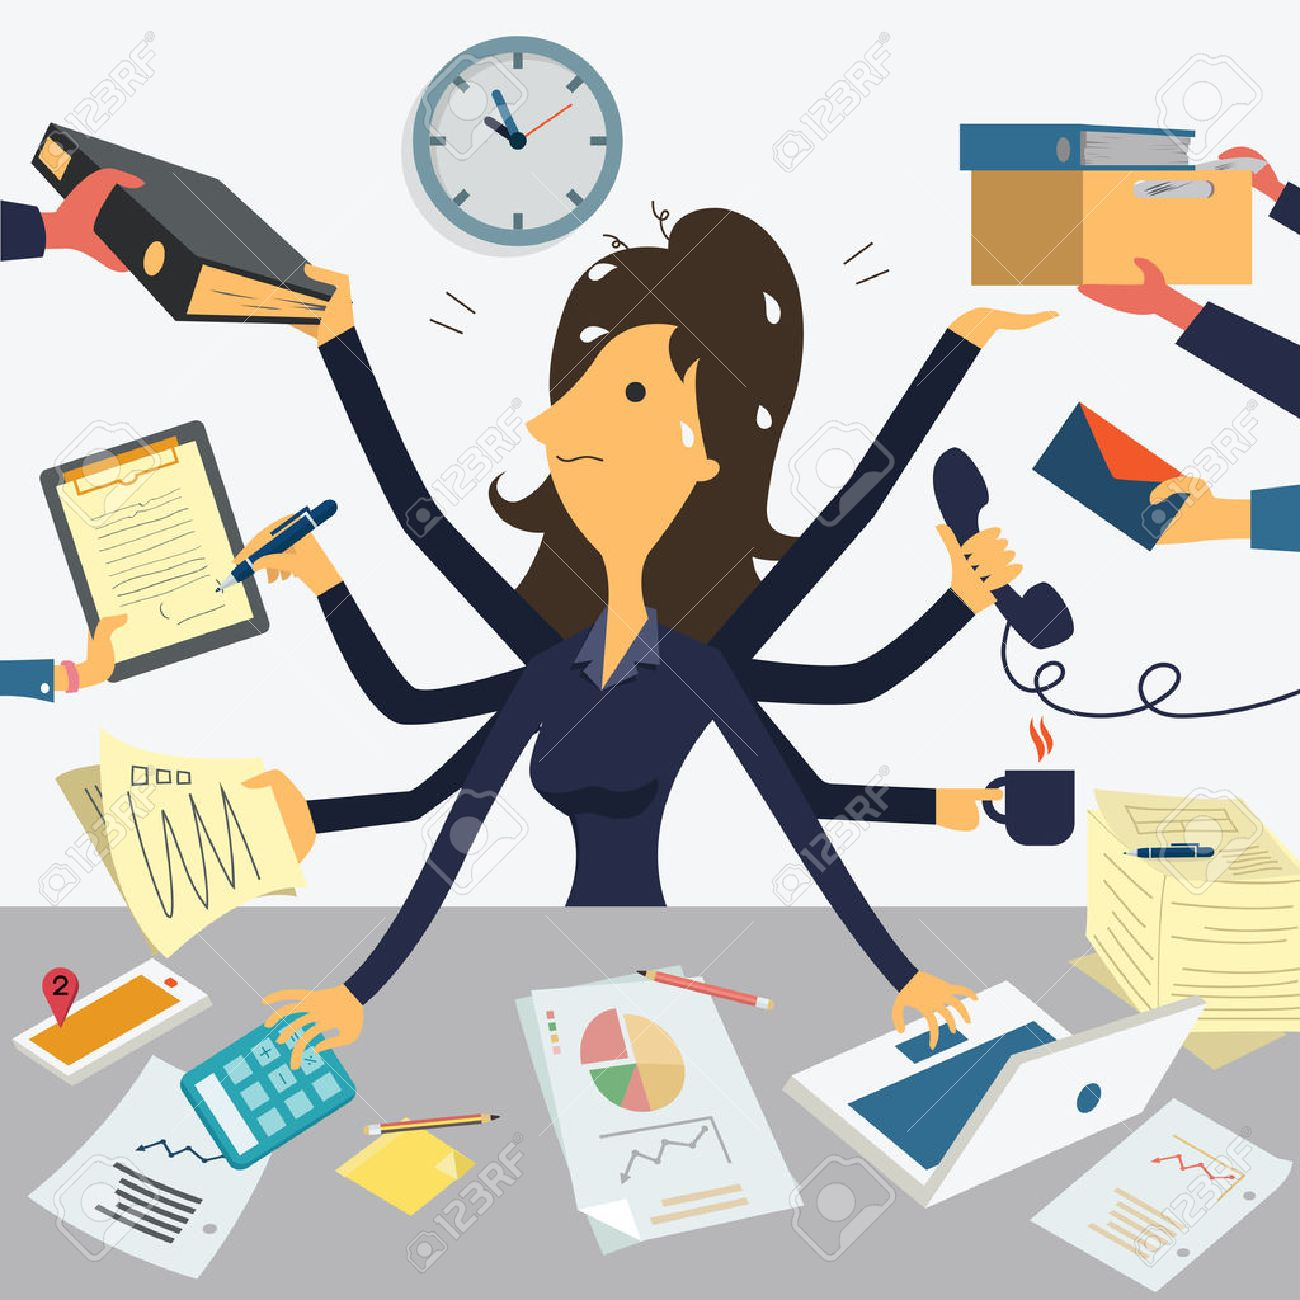 Businesswoman working with eight hands, representing to very busy business concept. - 34660152